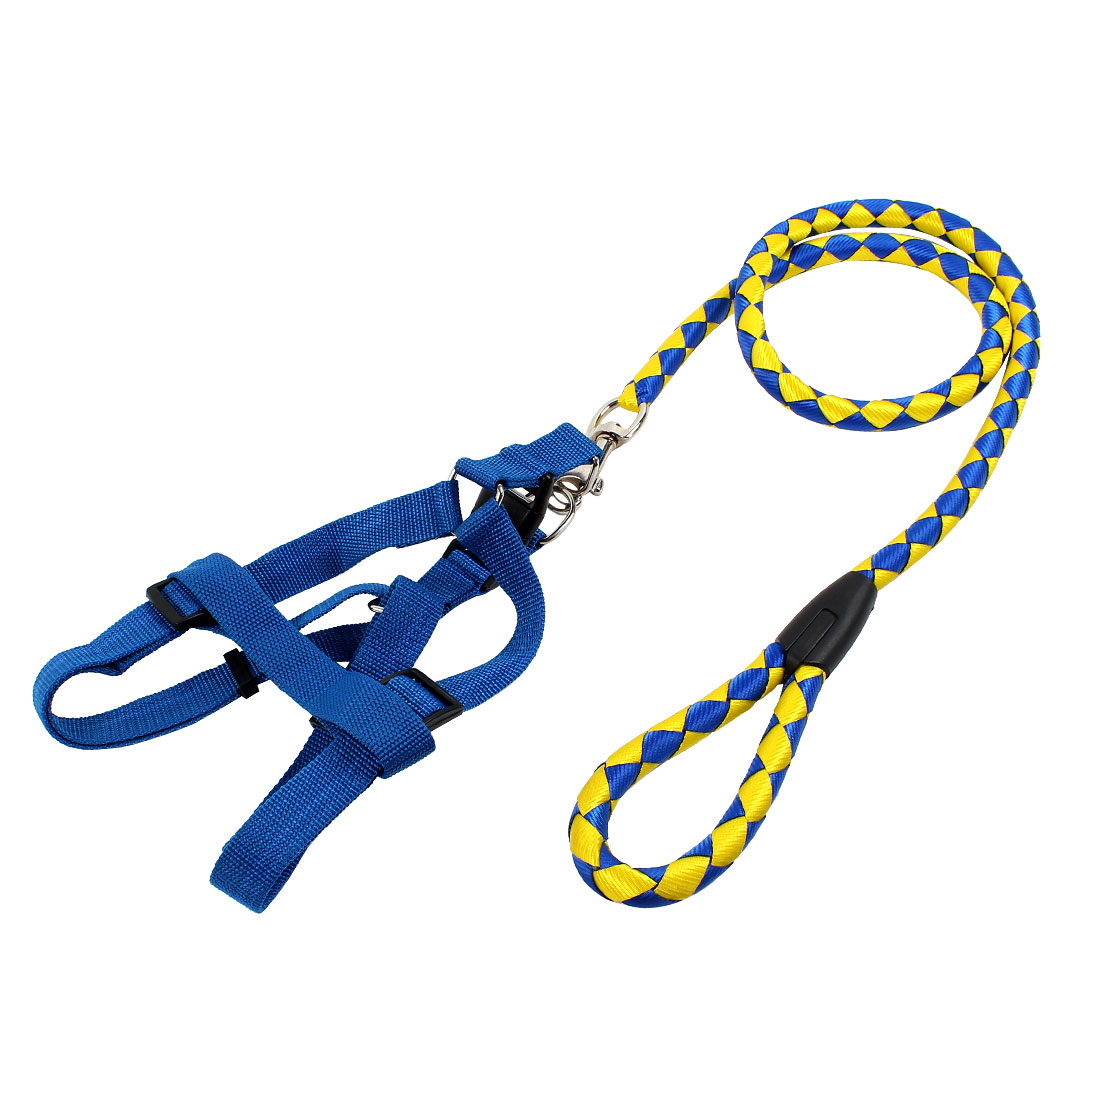 Pet Dog Doggie Nylon Rope Lead Adjustable Harness Leash Collar Blue Yellow